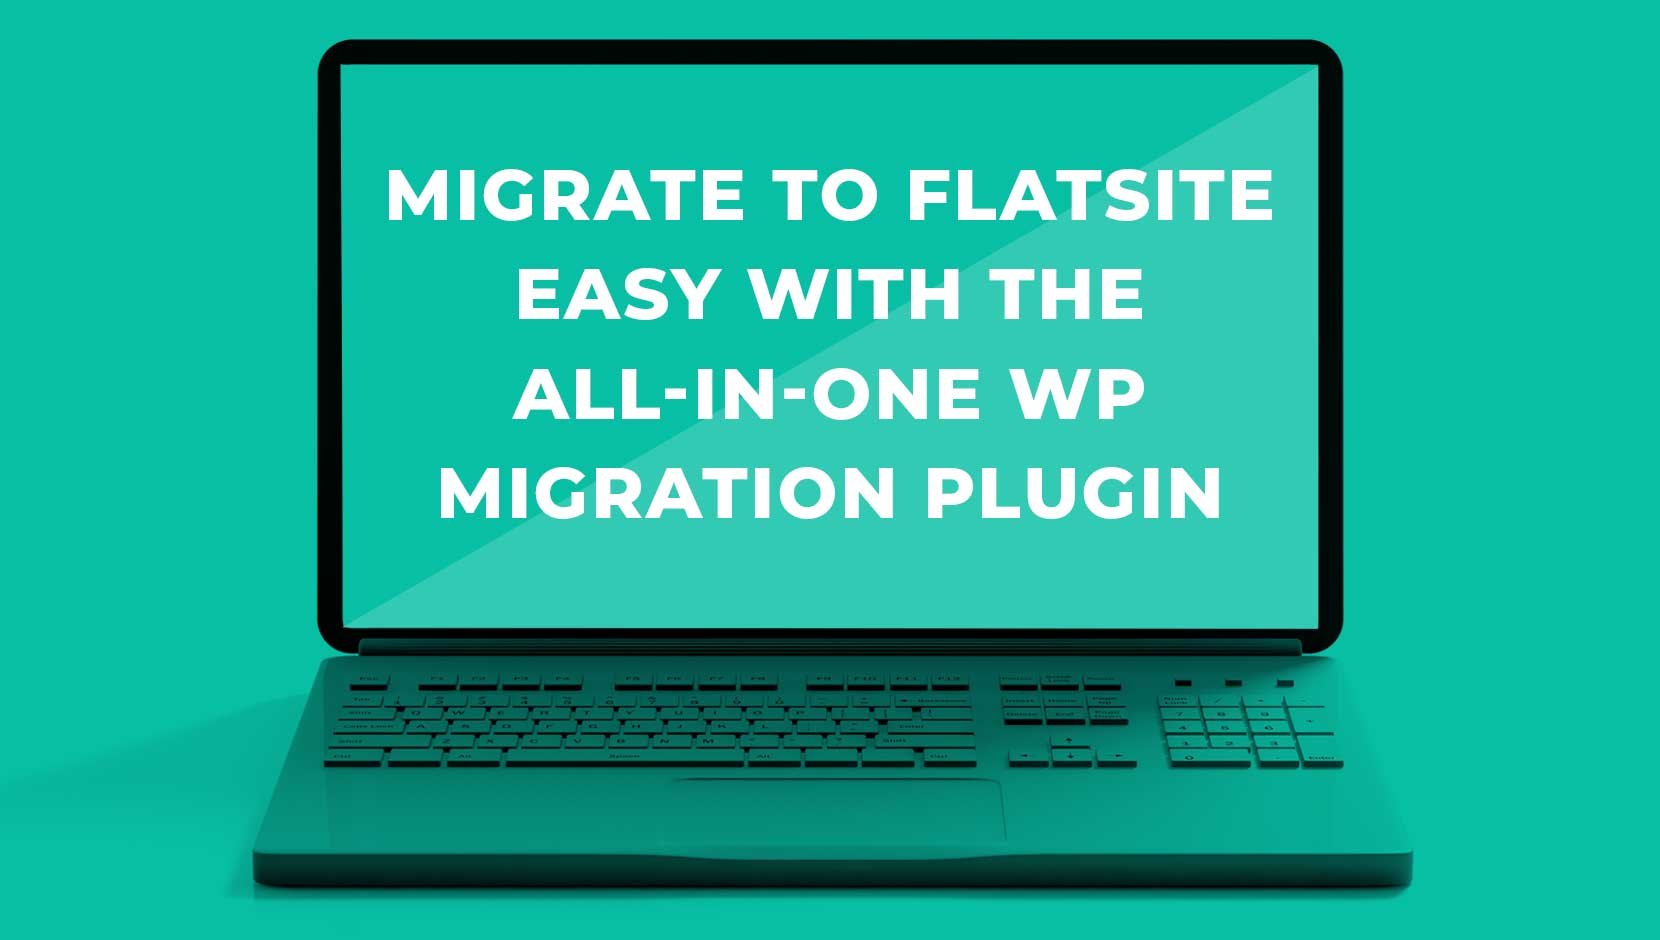 Migrate to FLATsite Easy with the All-In-One WP Migration Plugin